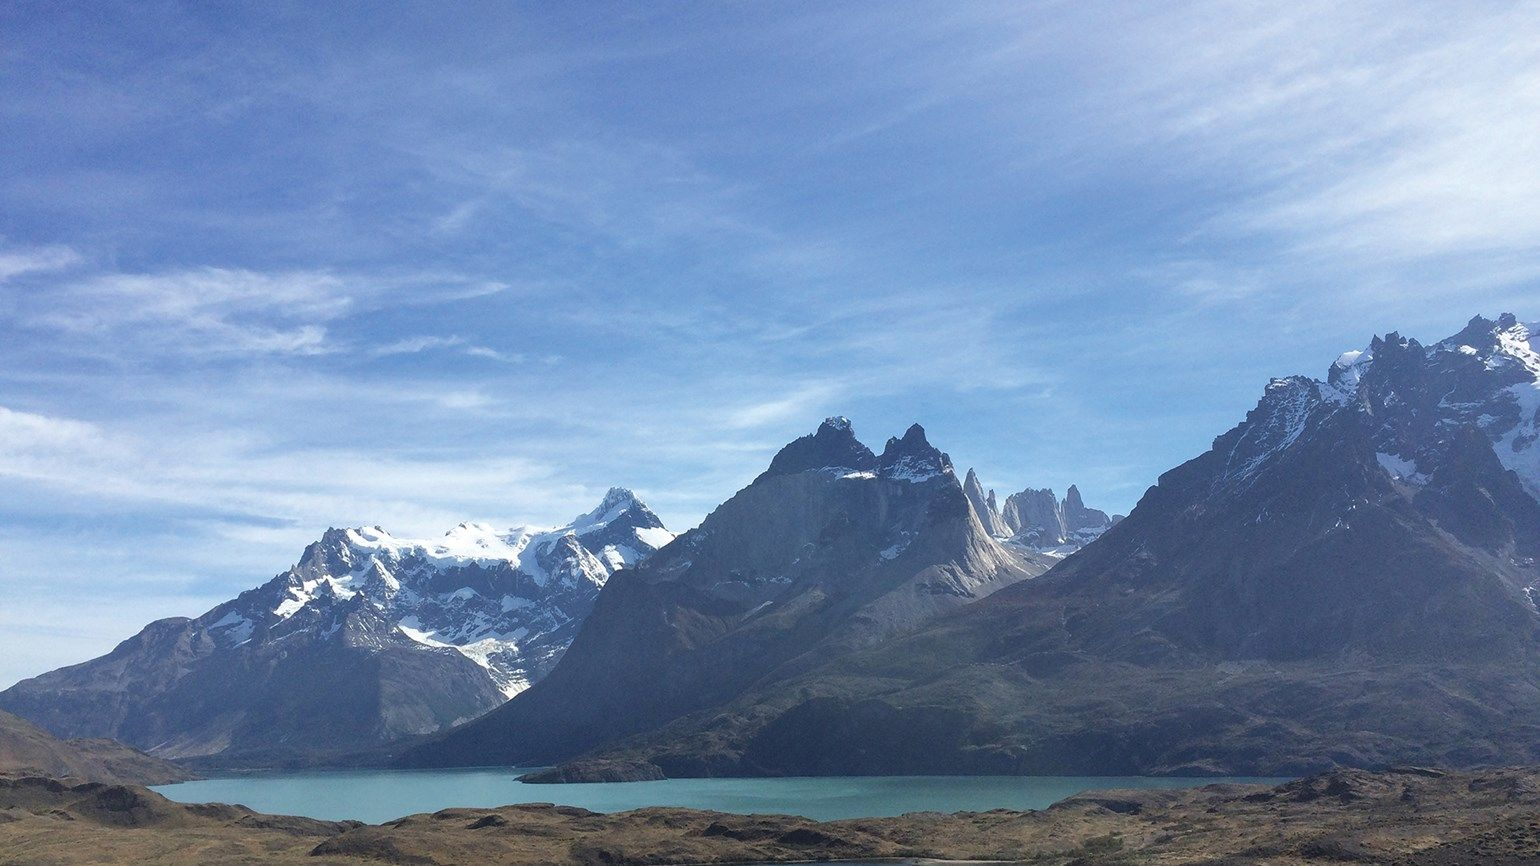 In Chile, Patagonia remains pristine: Travel Weekly